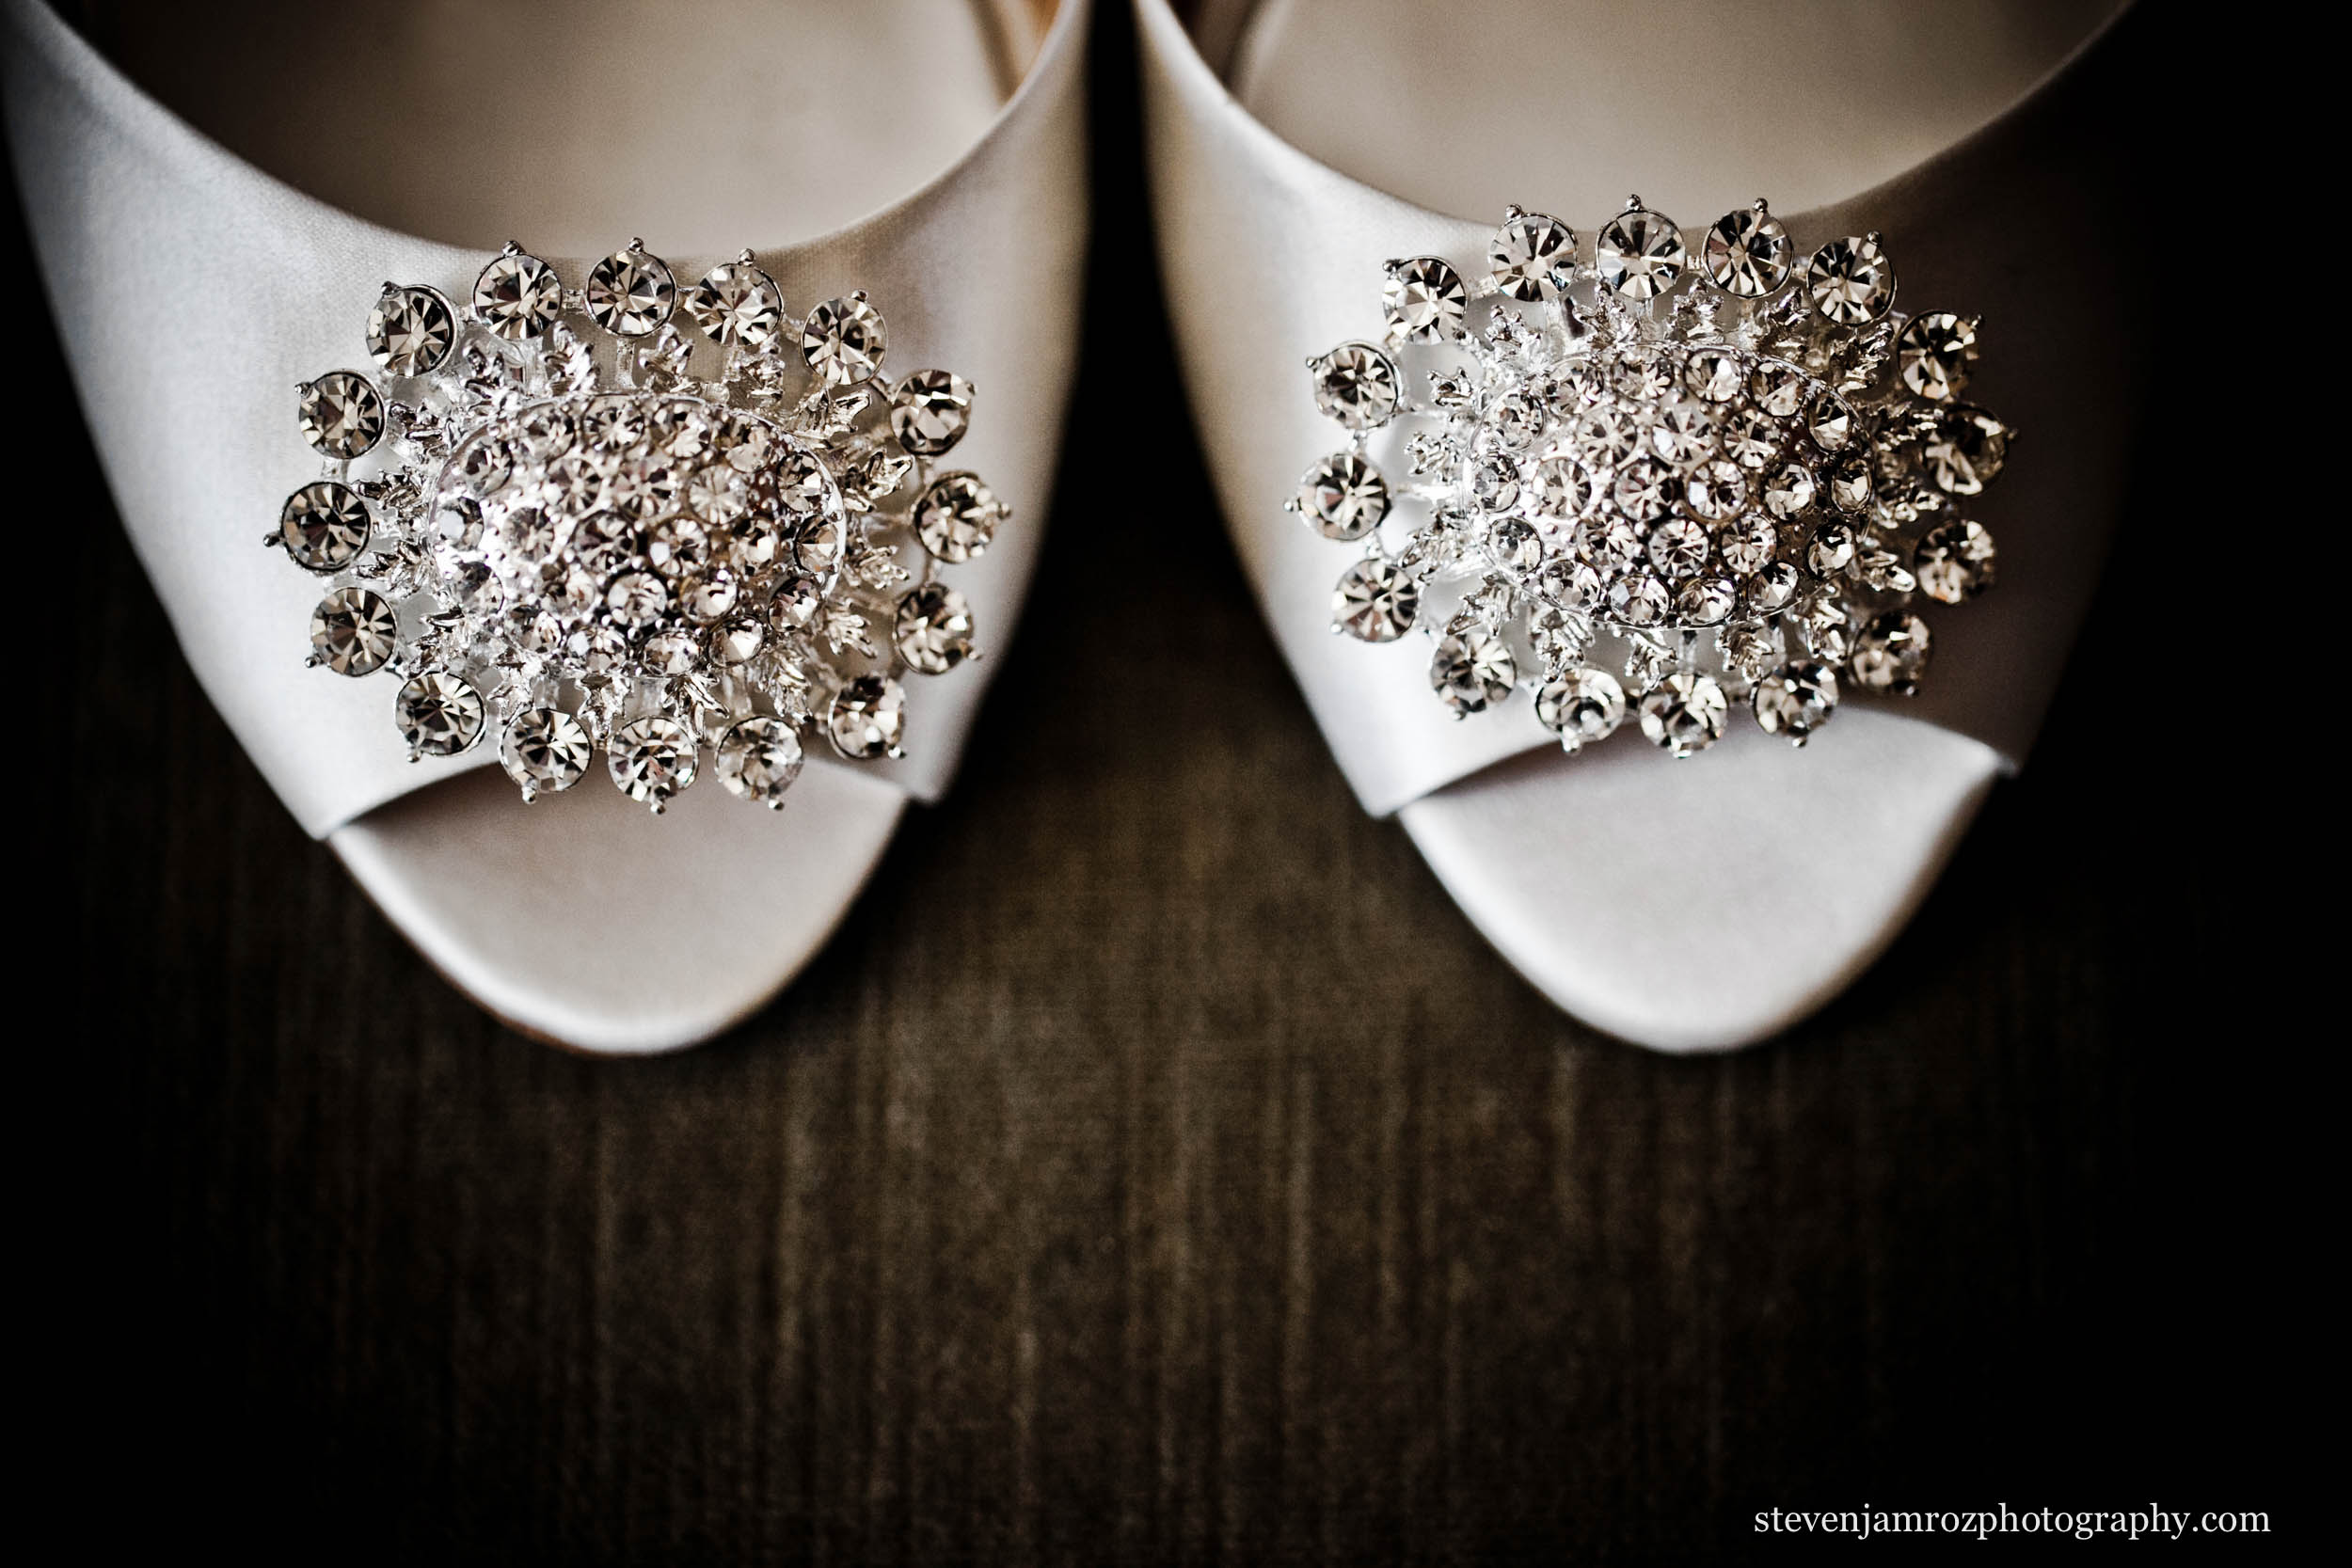 shoes-wedding-bride-beautiful-photography-0894.jpg